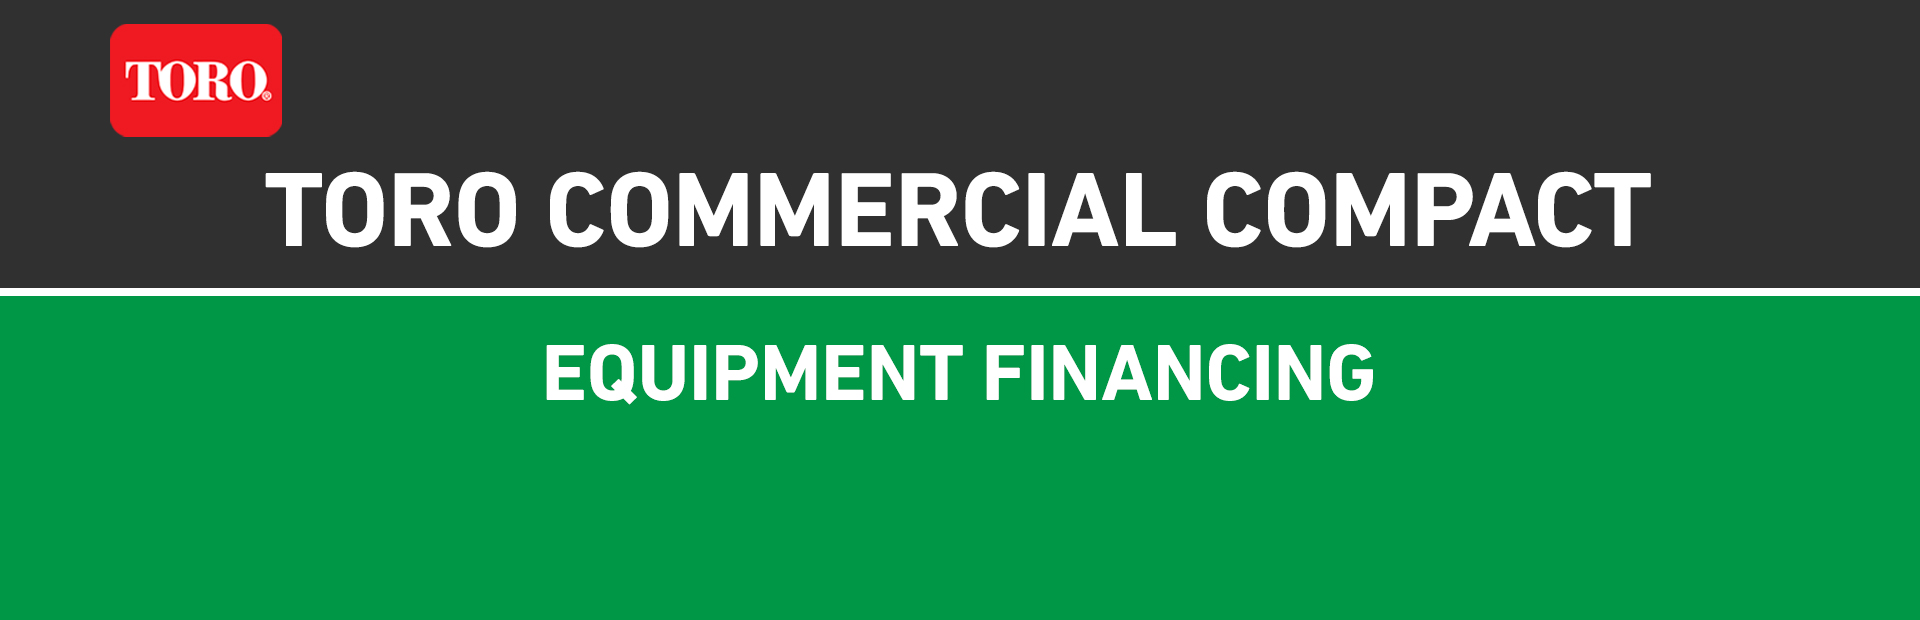 Toro: Toro Commercial Compact Equipment Financing